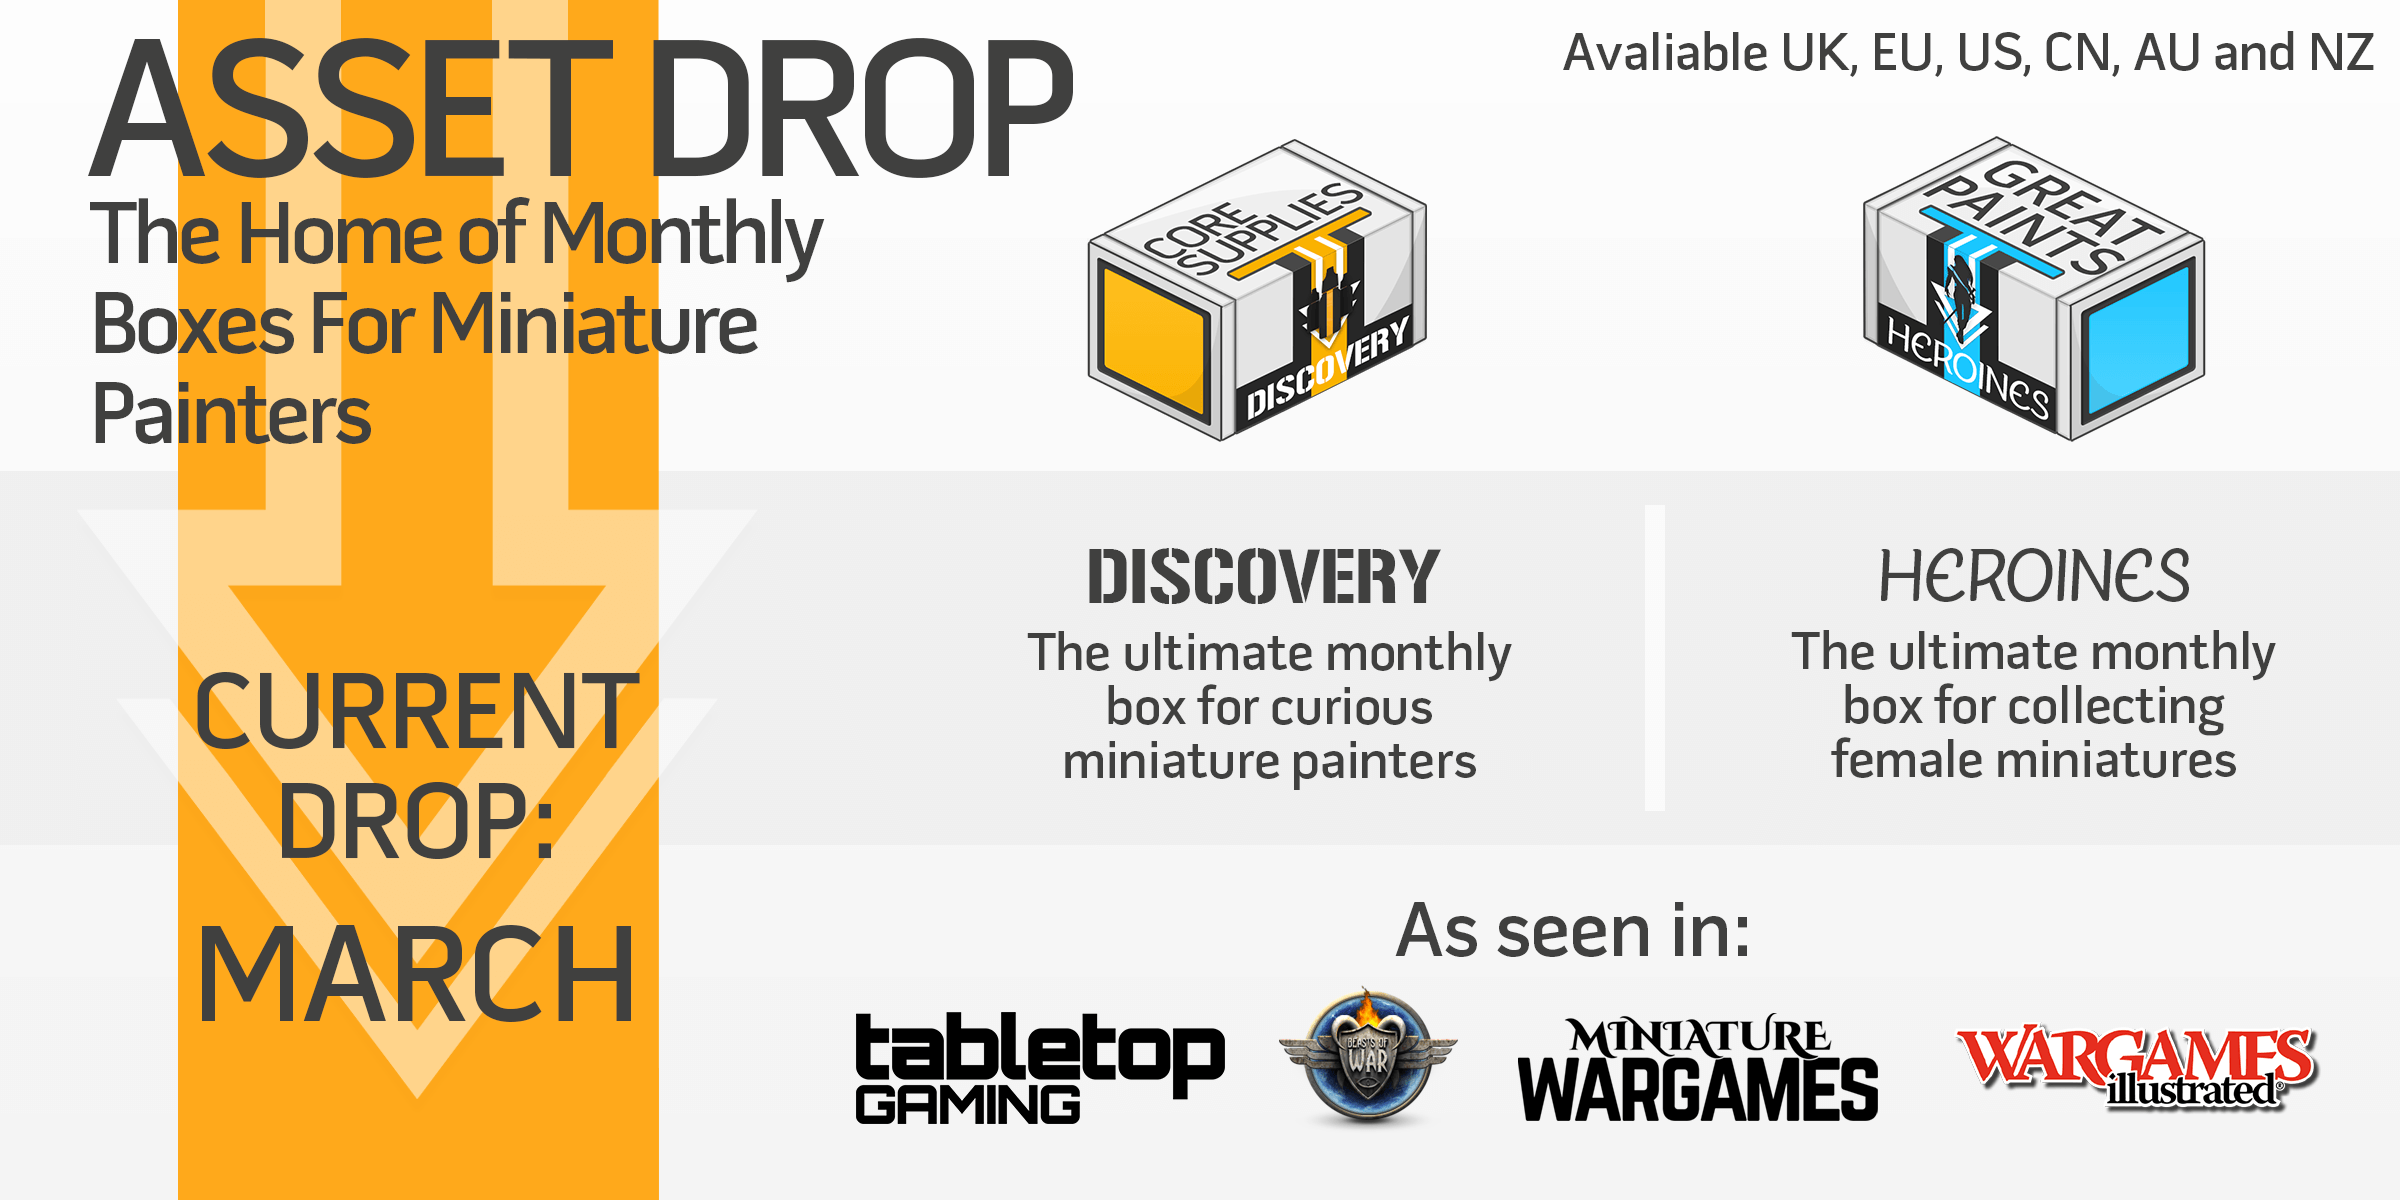 Asset Drop - monthly boxes for miniature painters and wargamers